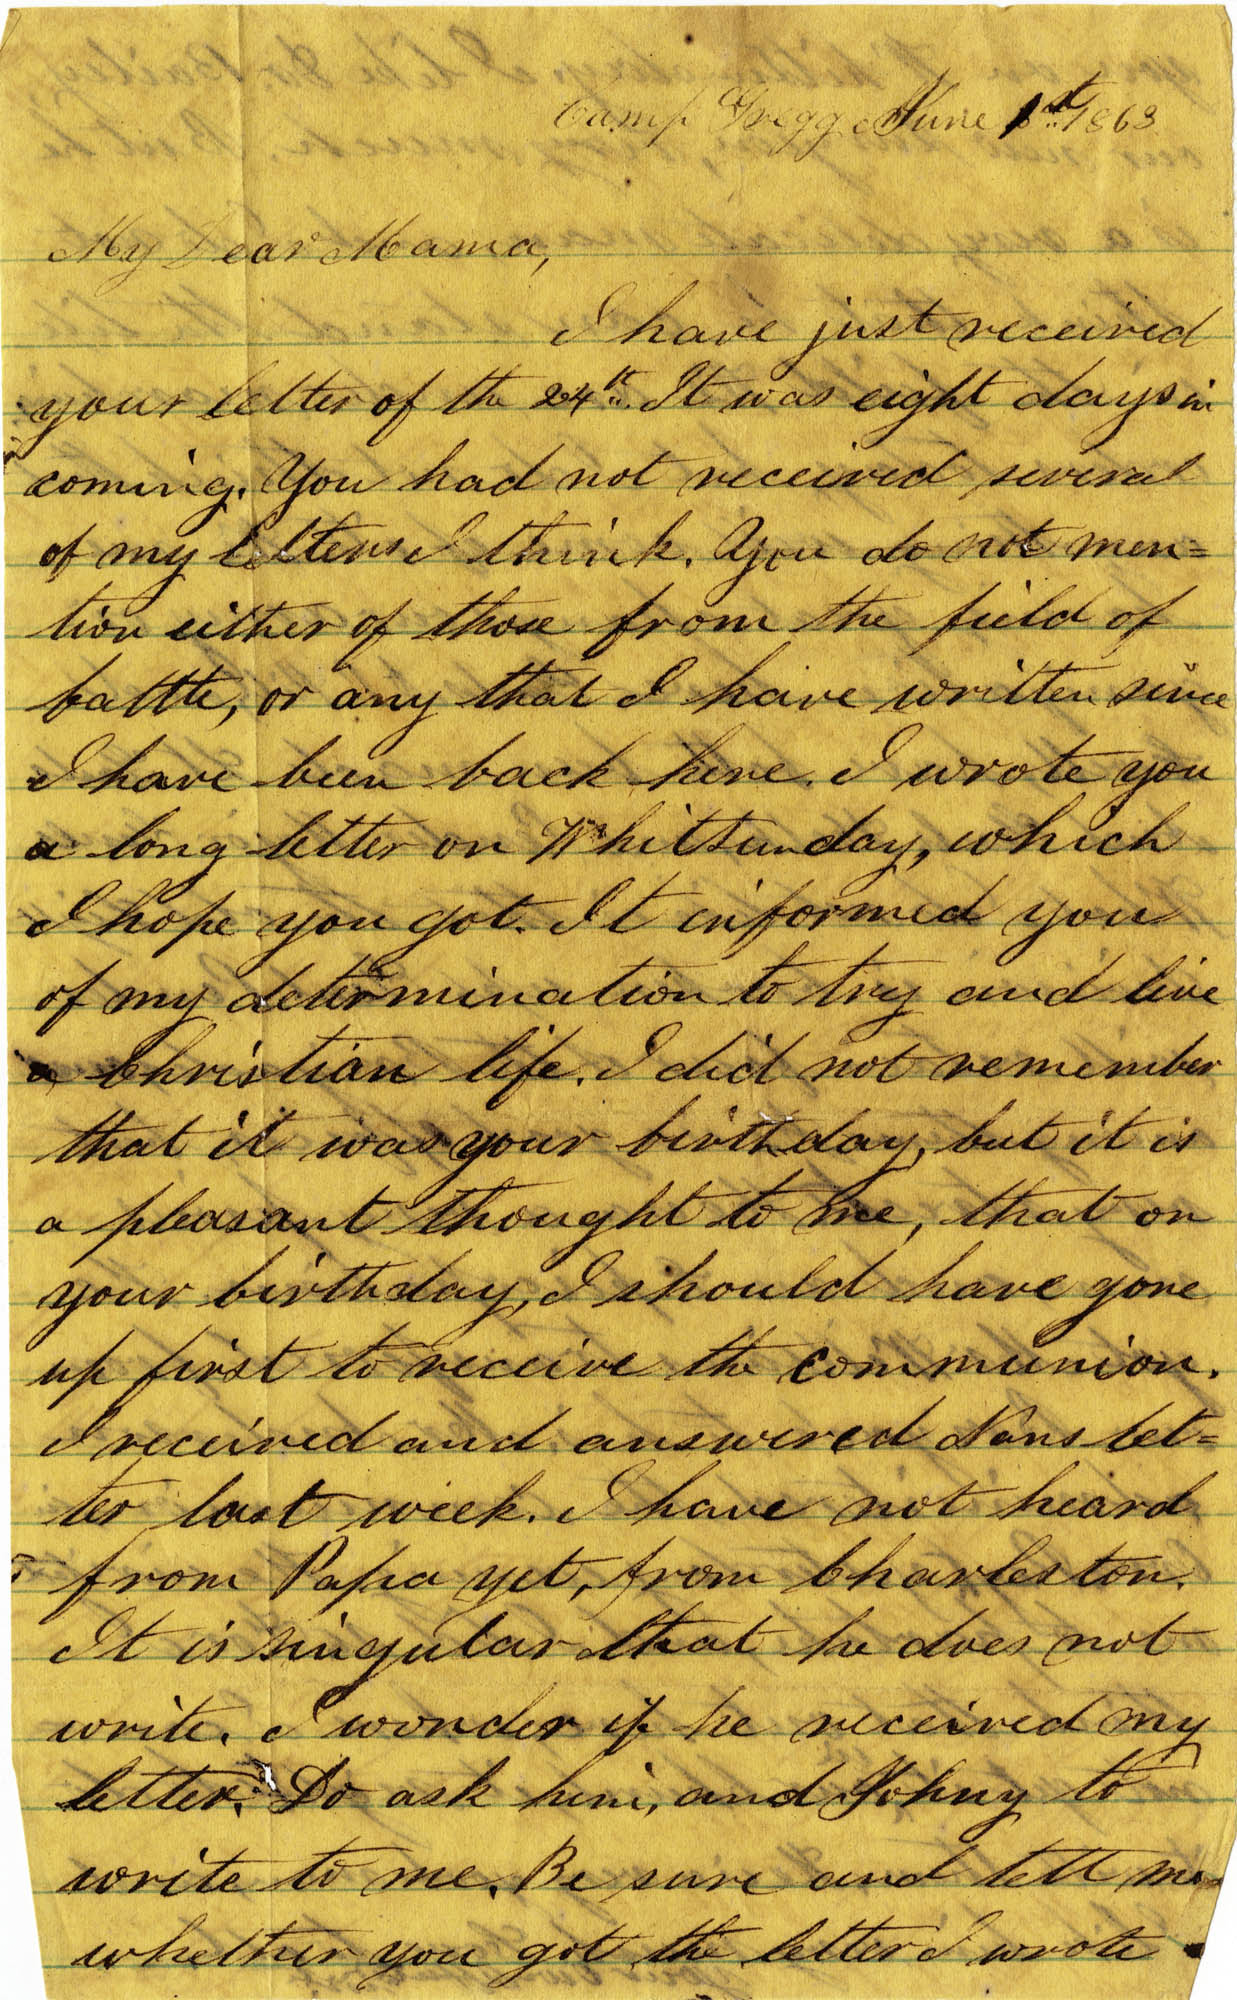 084. Willis Keith to Anna Bell Keith -- June 1, 1863